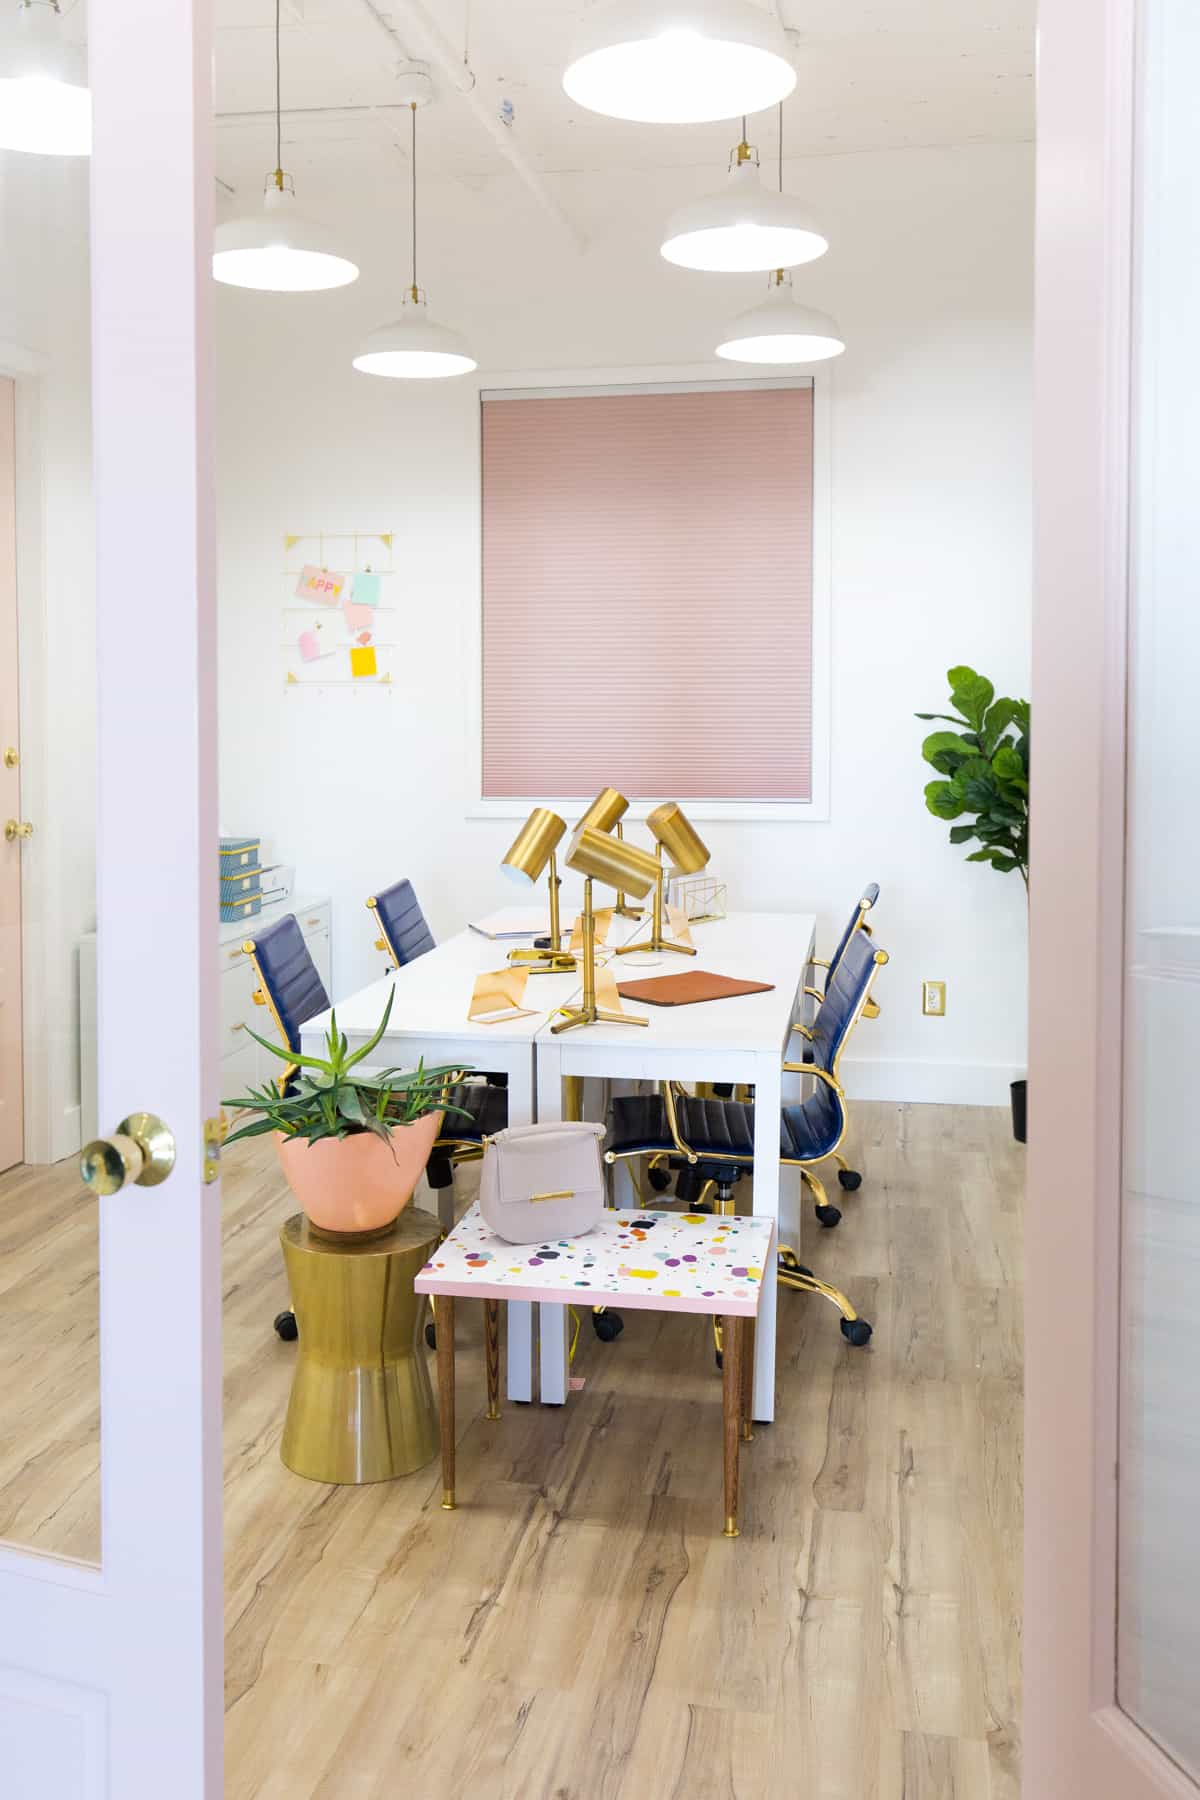 bright studio office with pink window shades and gold accents.